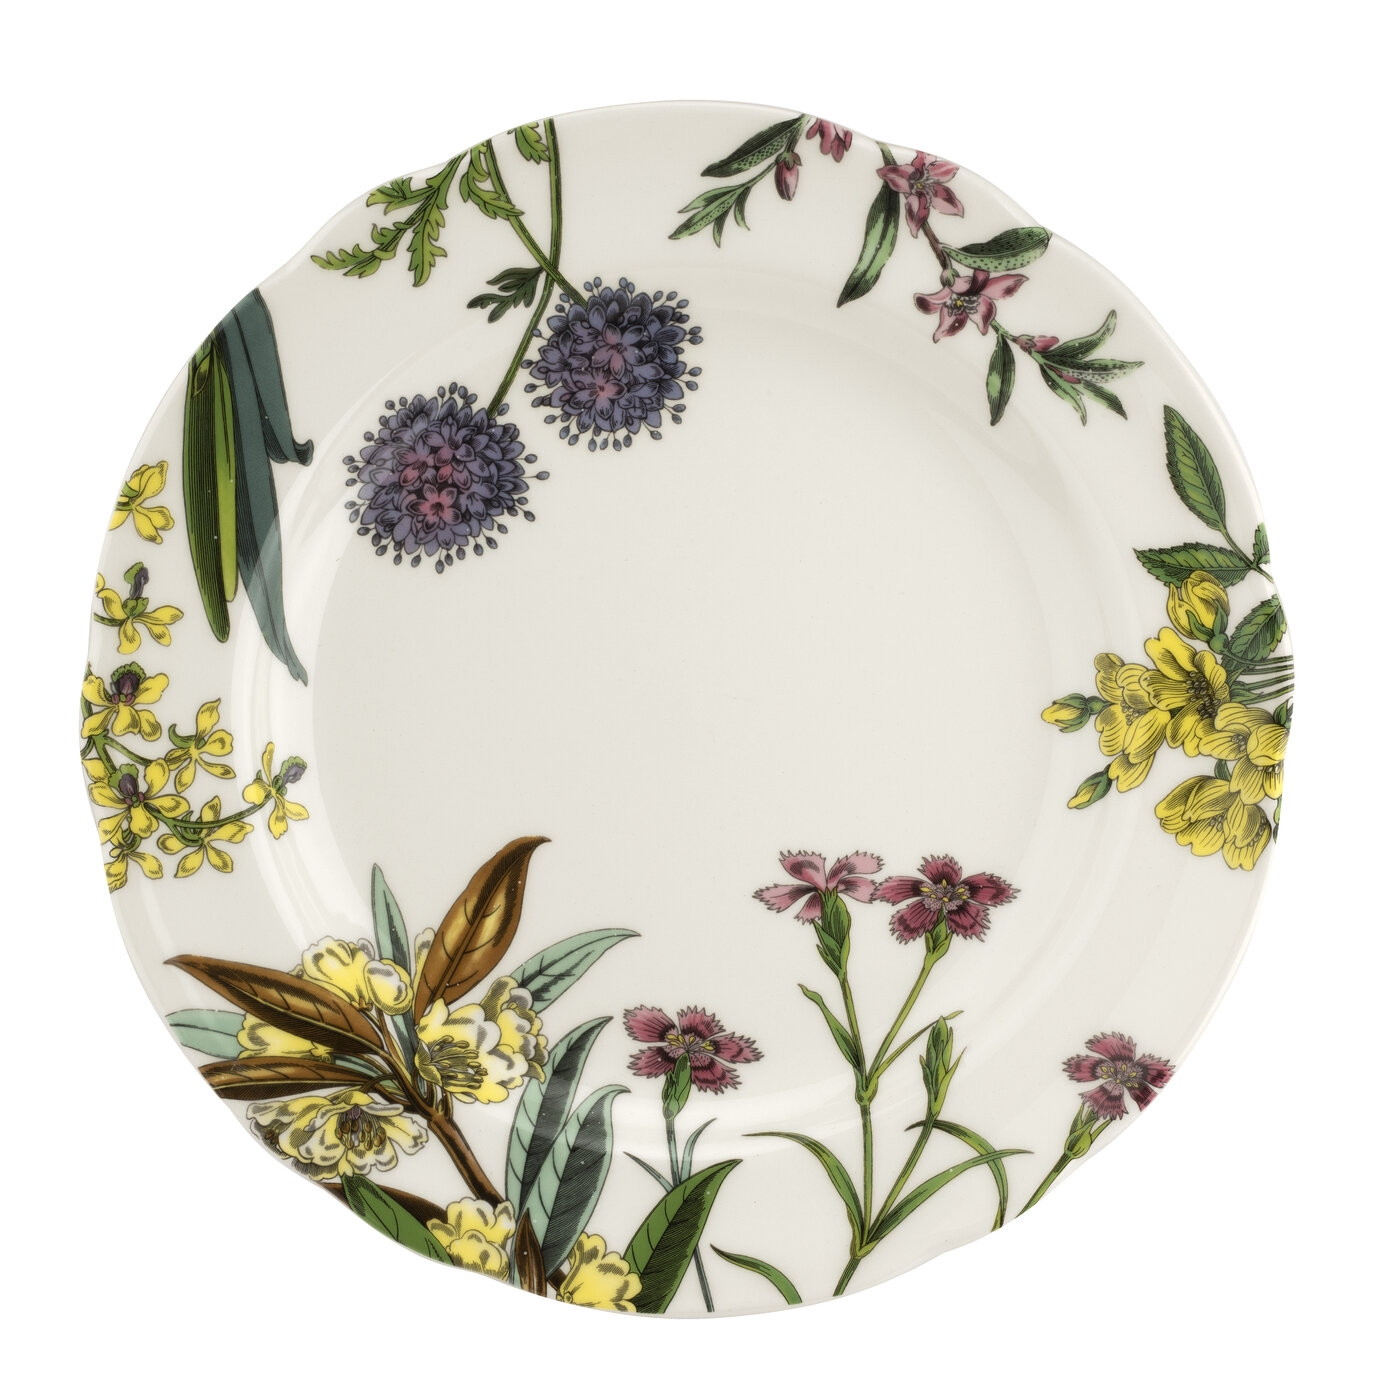 Spode Stafford Blooms 10.5 Inch Dinner Plate image number 0